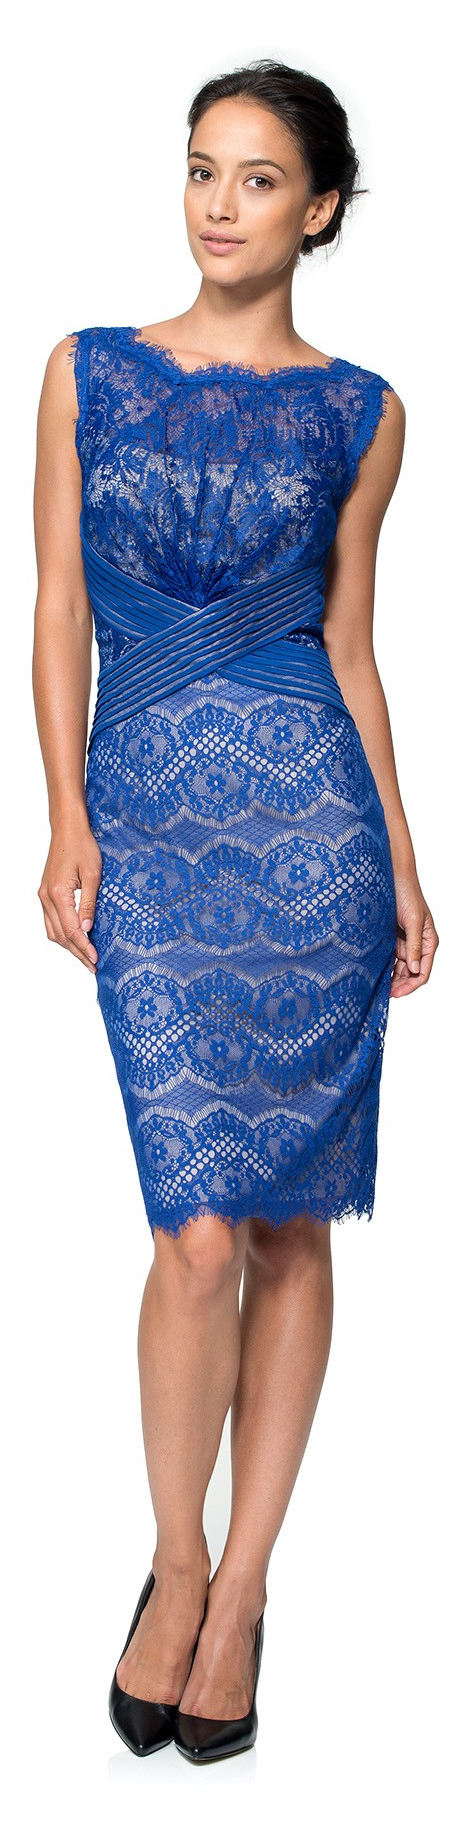 Tadashi shoji v neck lace cocktail dress – Dress blog Edin